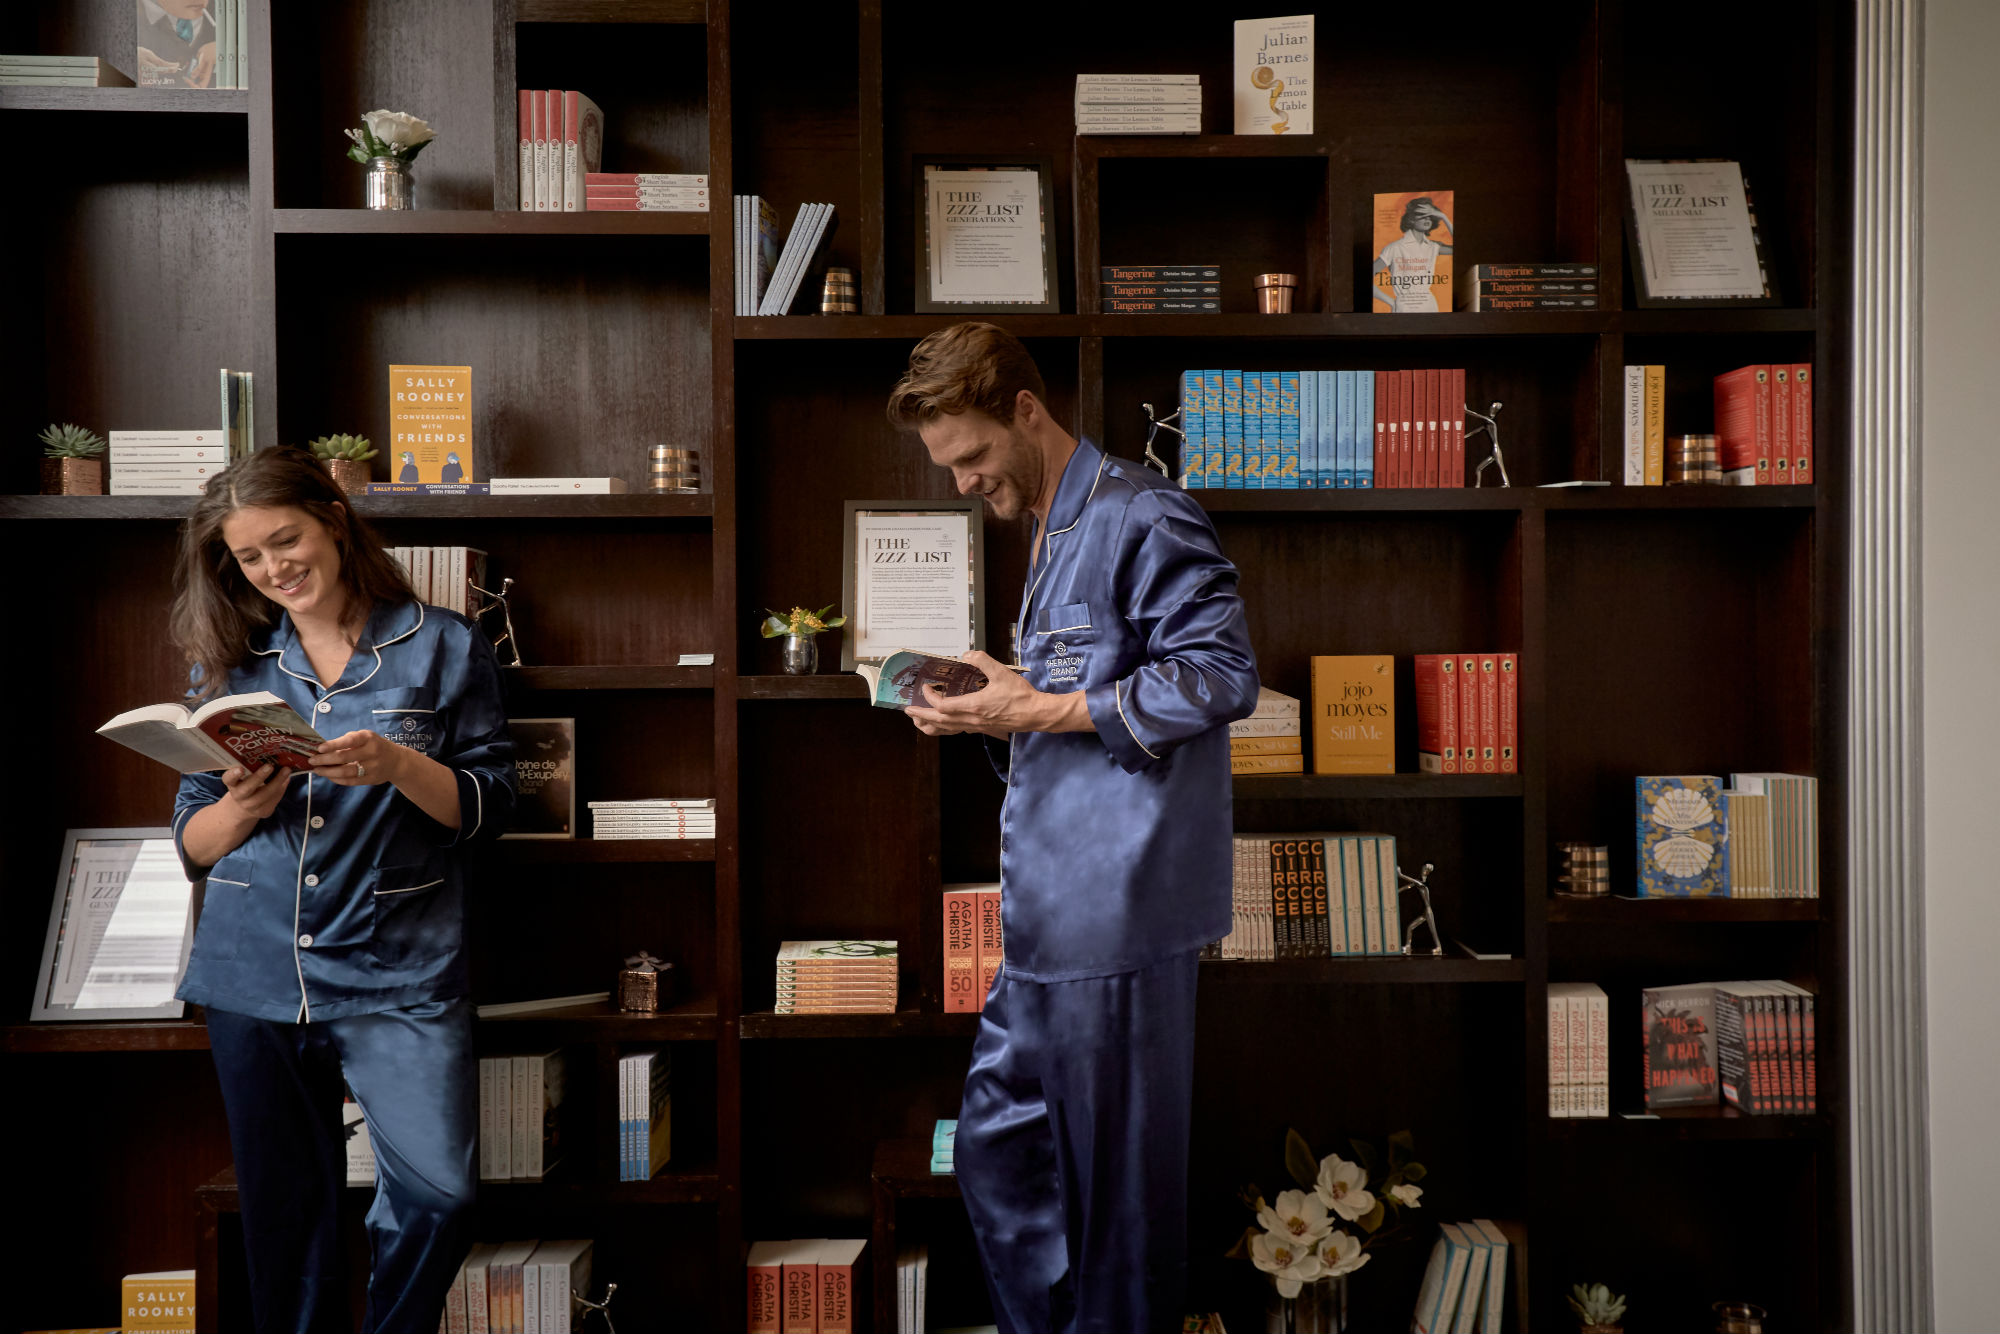 See the hotel library curated just to help guests nod off to sleep